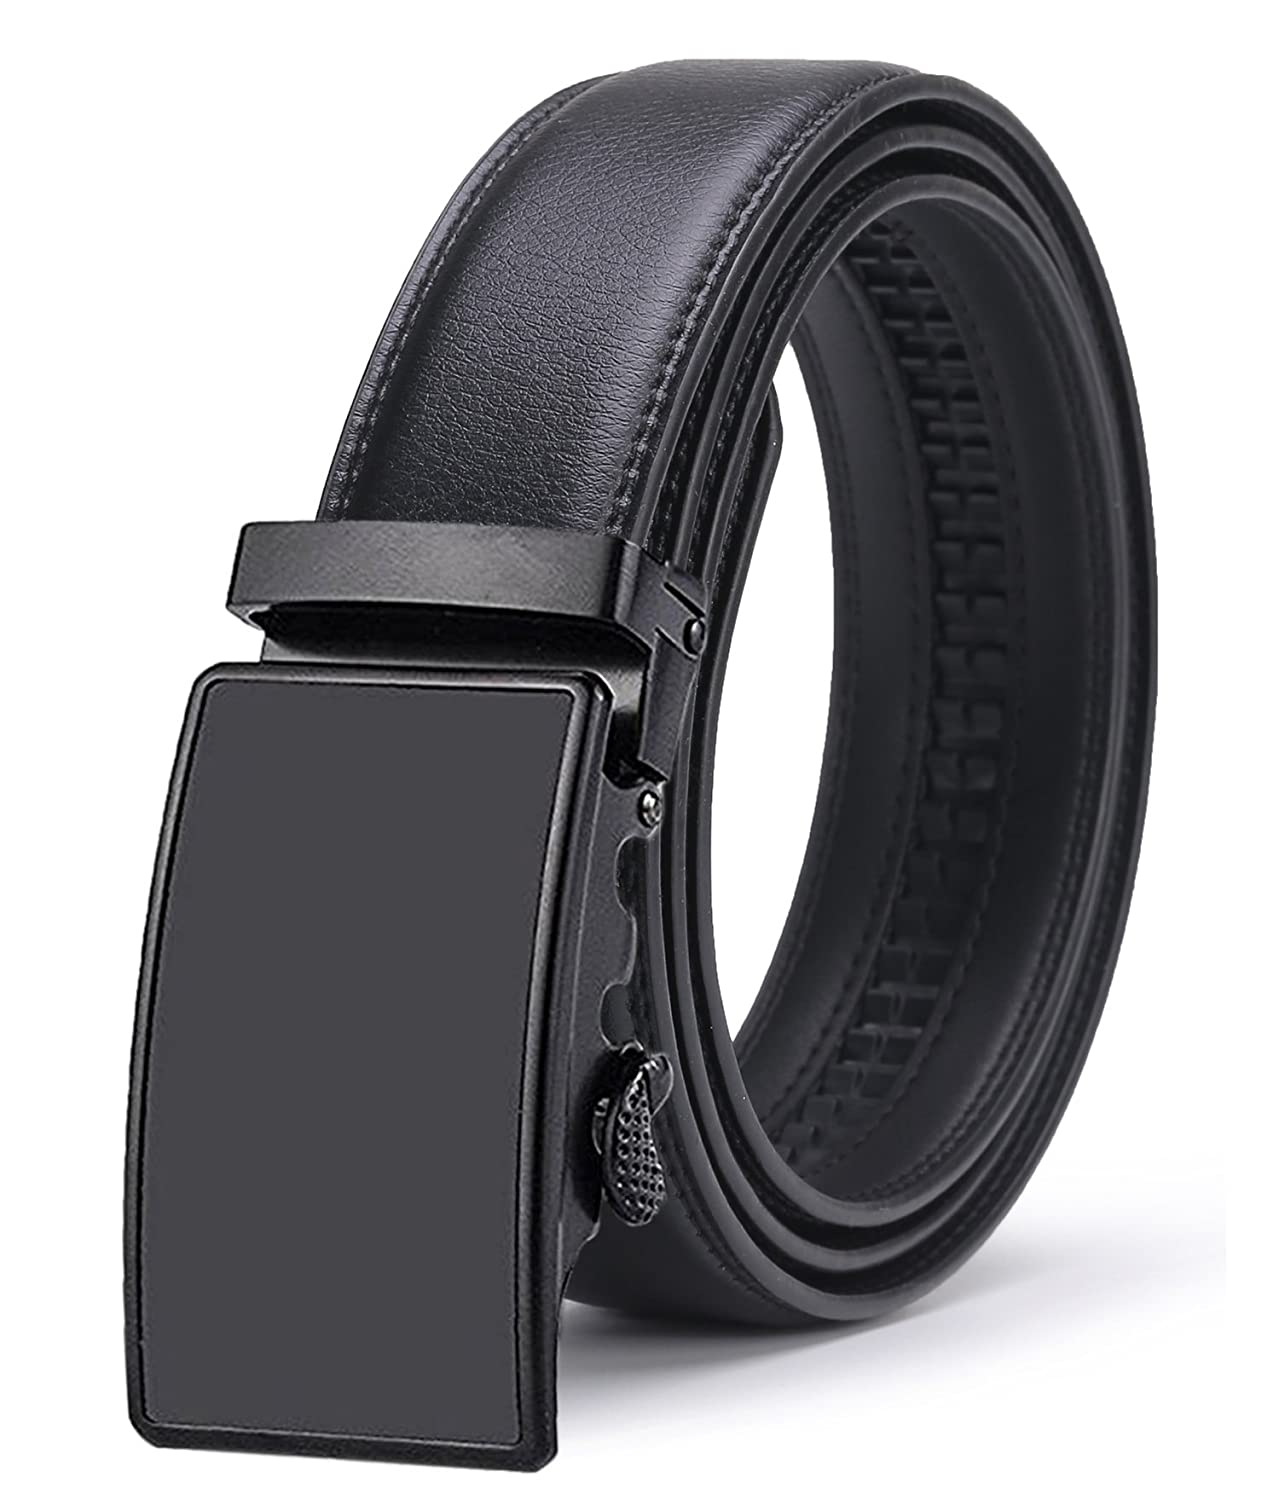 1a5a8186f3f5c ITIEZY Ratchet Automatic Buckle (Sliding Buckle) Leather Belt Strap For Men  at Amazon Men s Clothing store